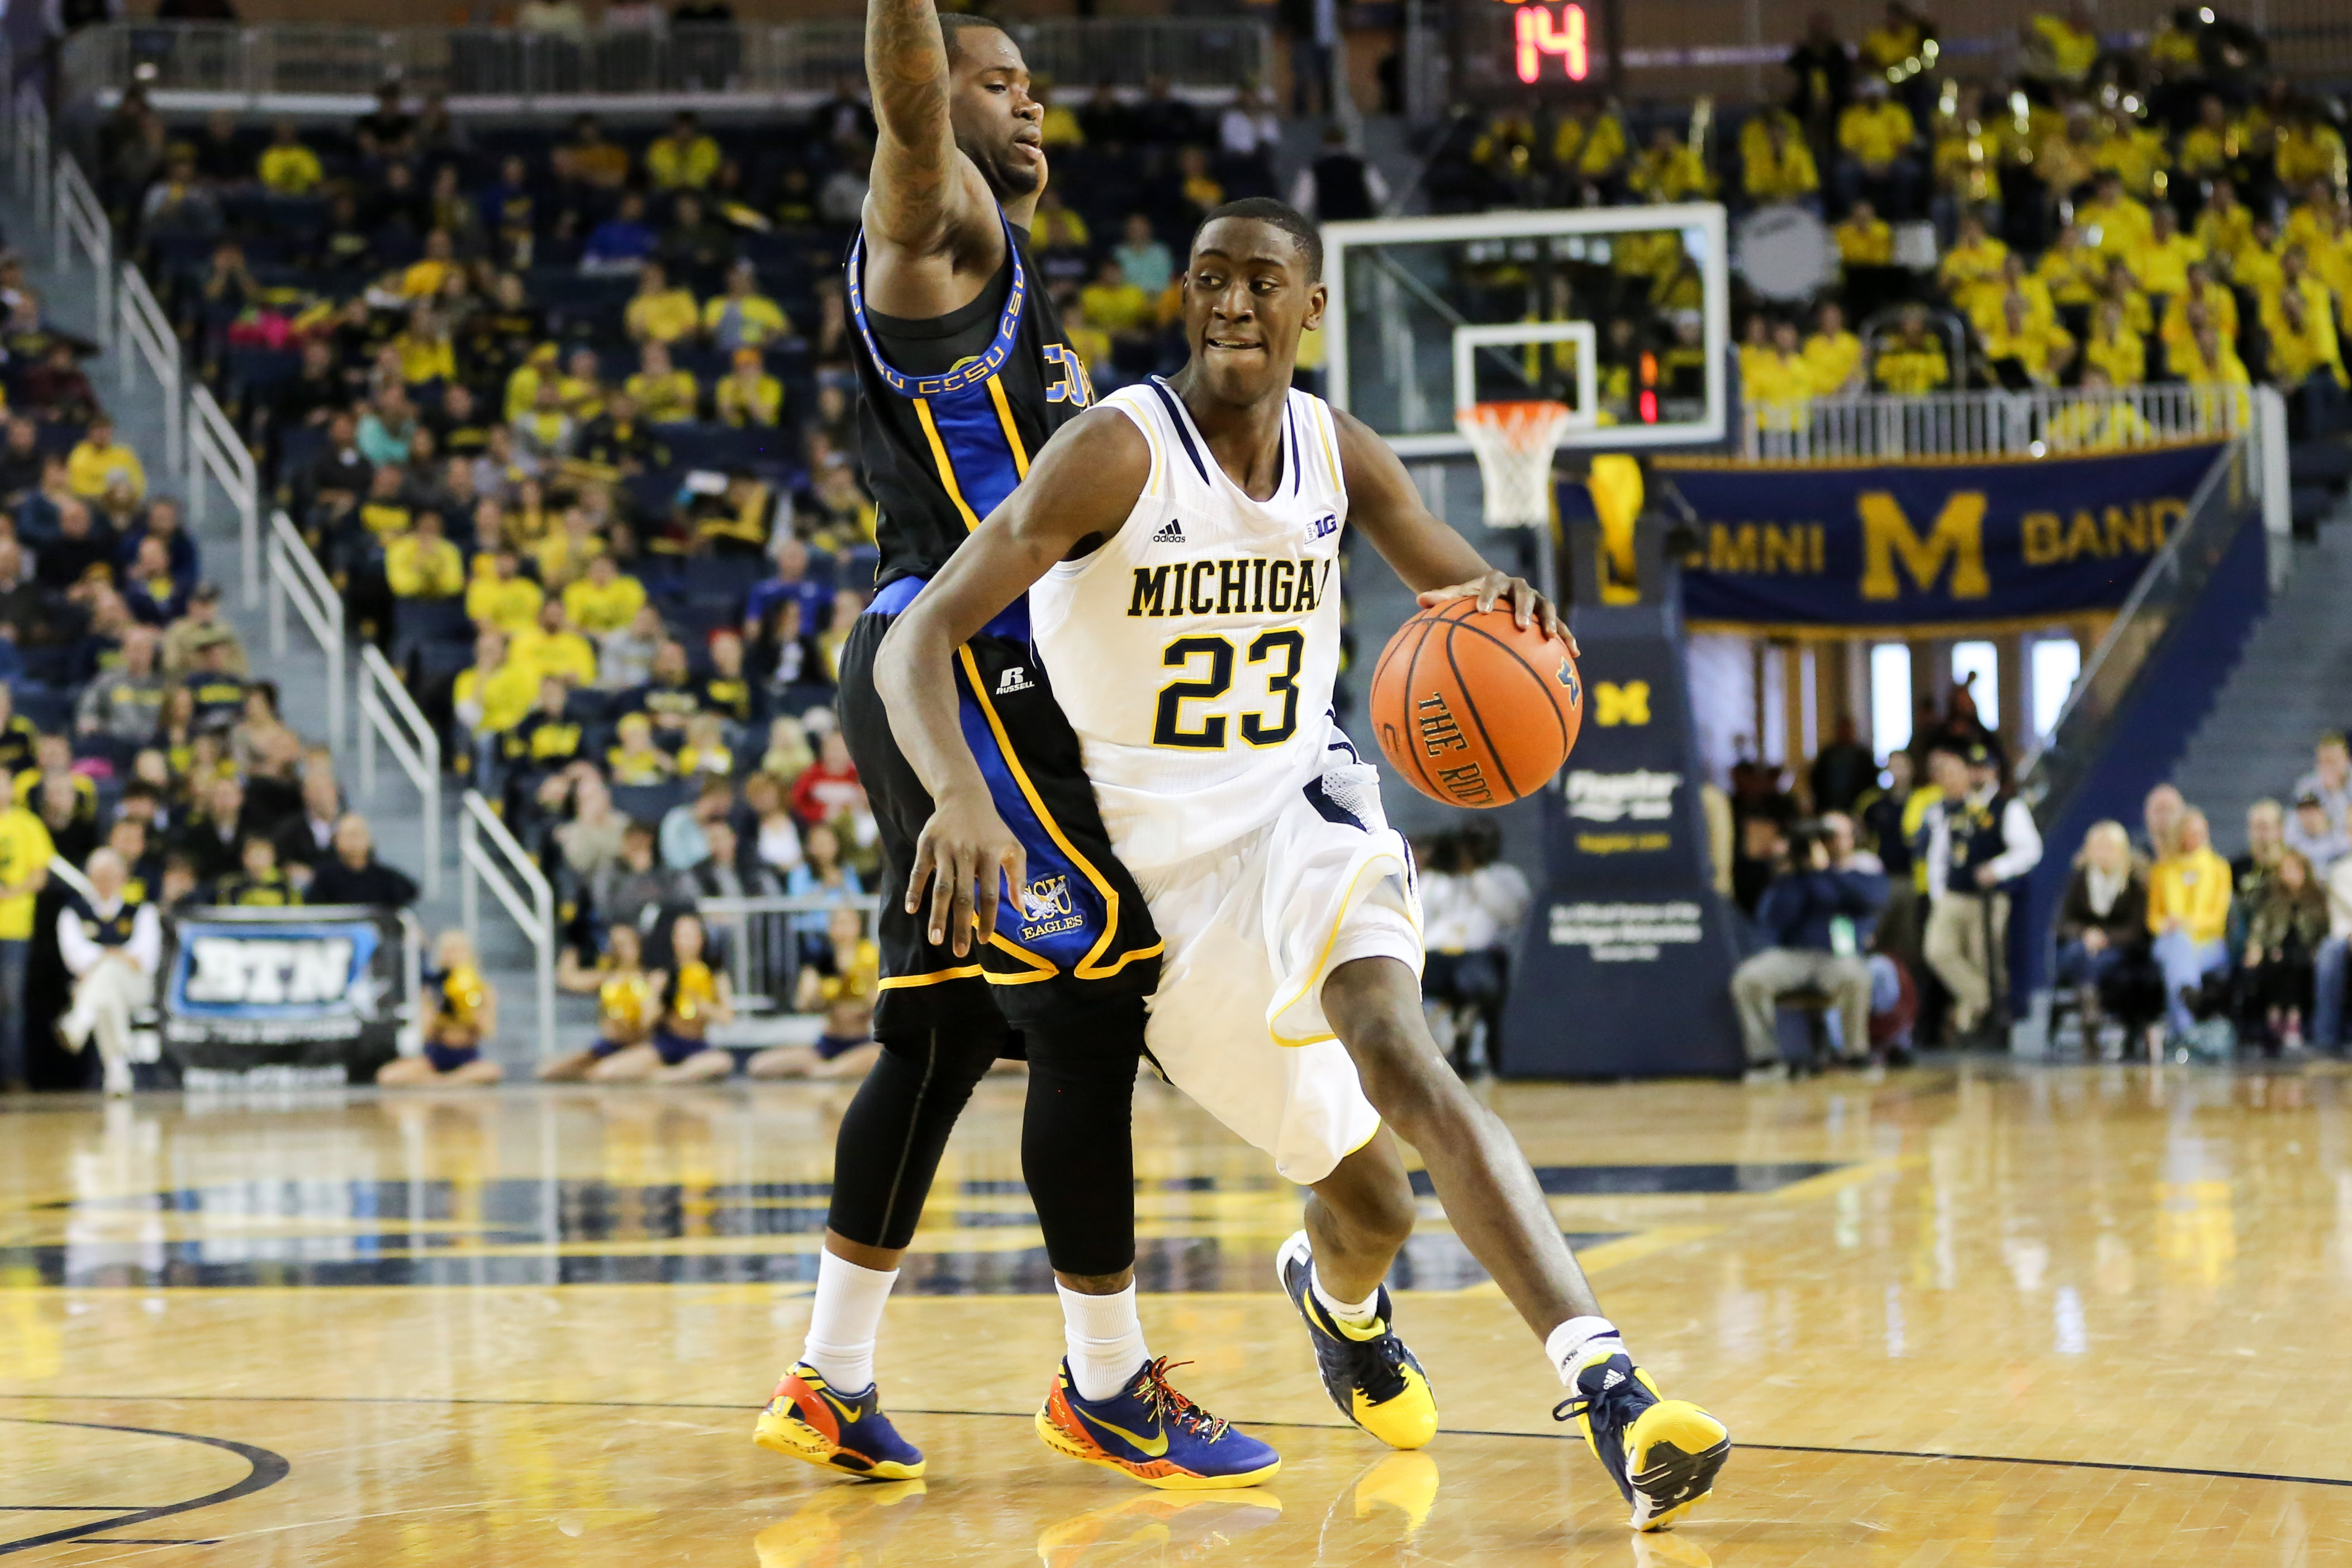 Michigan 87, Coppin State 45-12